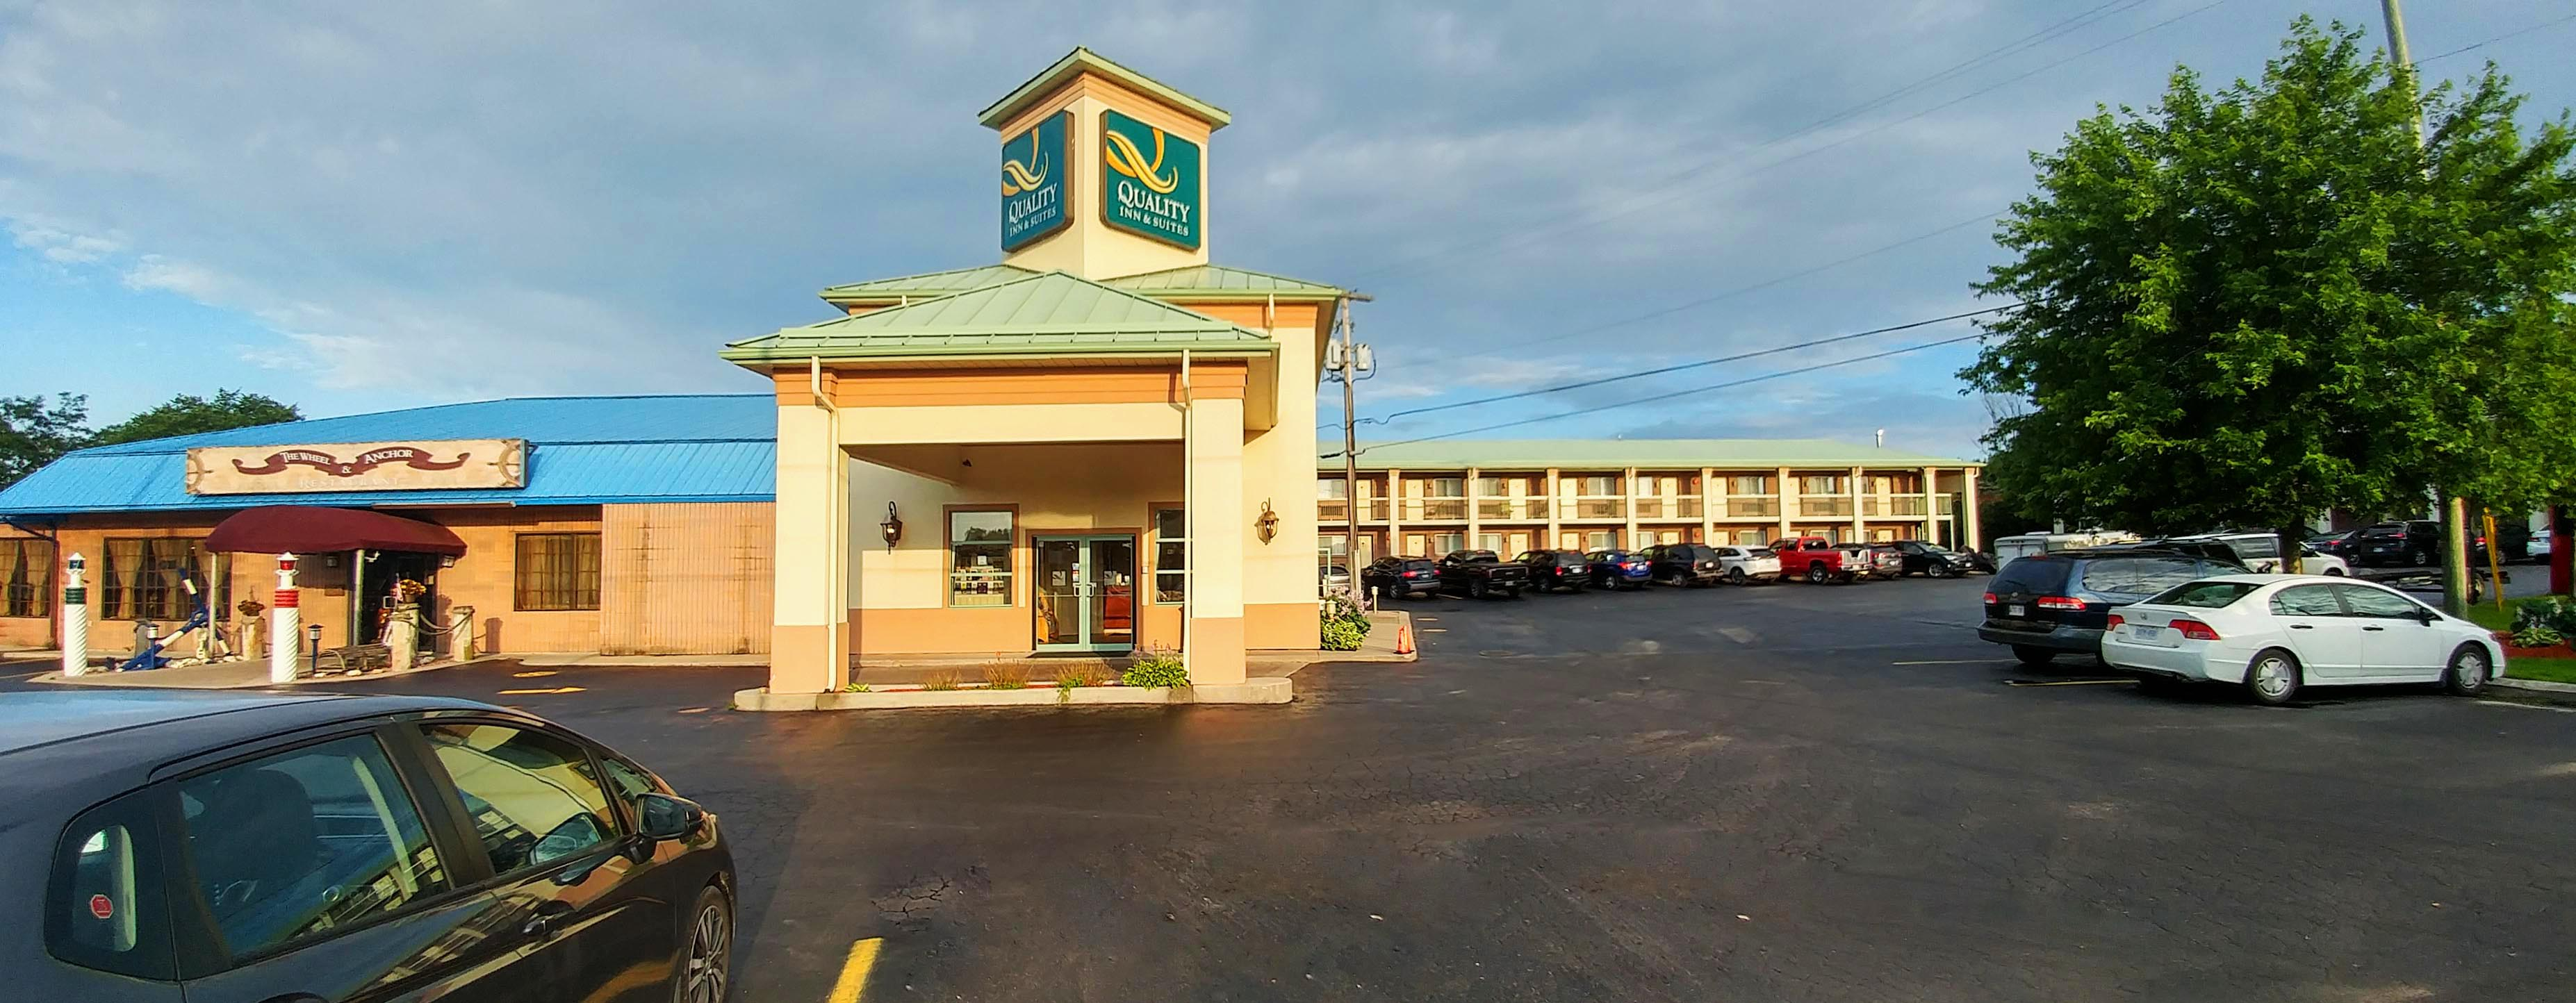 Quality Inn and Suites 1000 Islands Featured Image